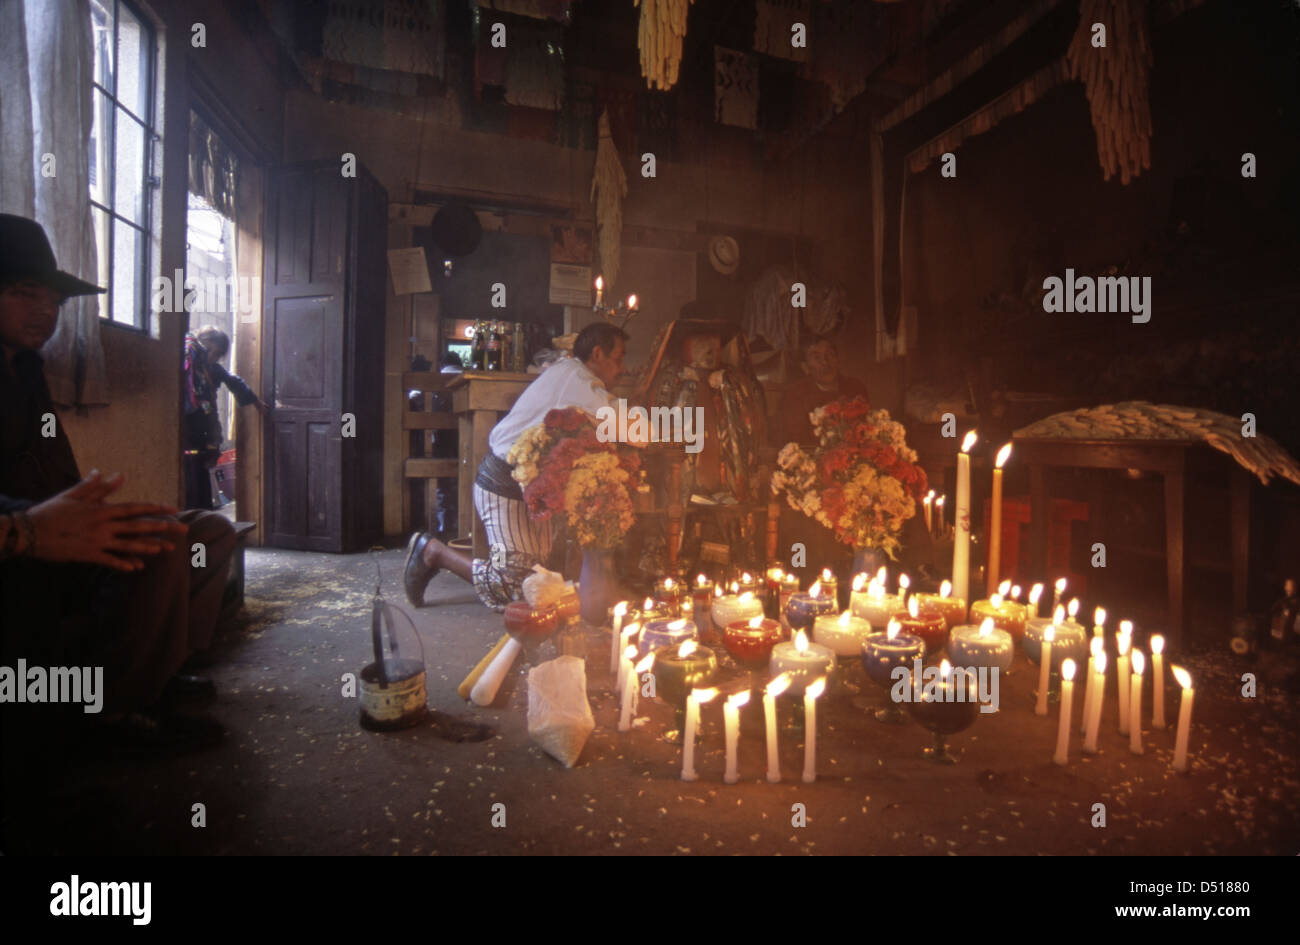 Locals pay respects to maximon at a candlelit shrine in Santiago Atitlan - Stock Image